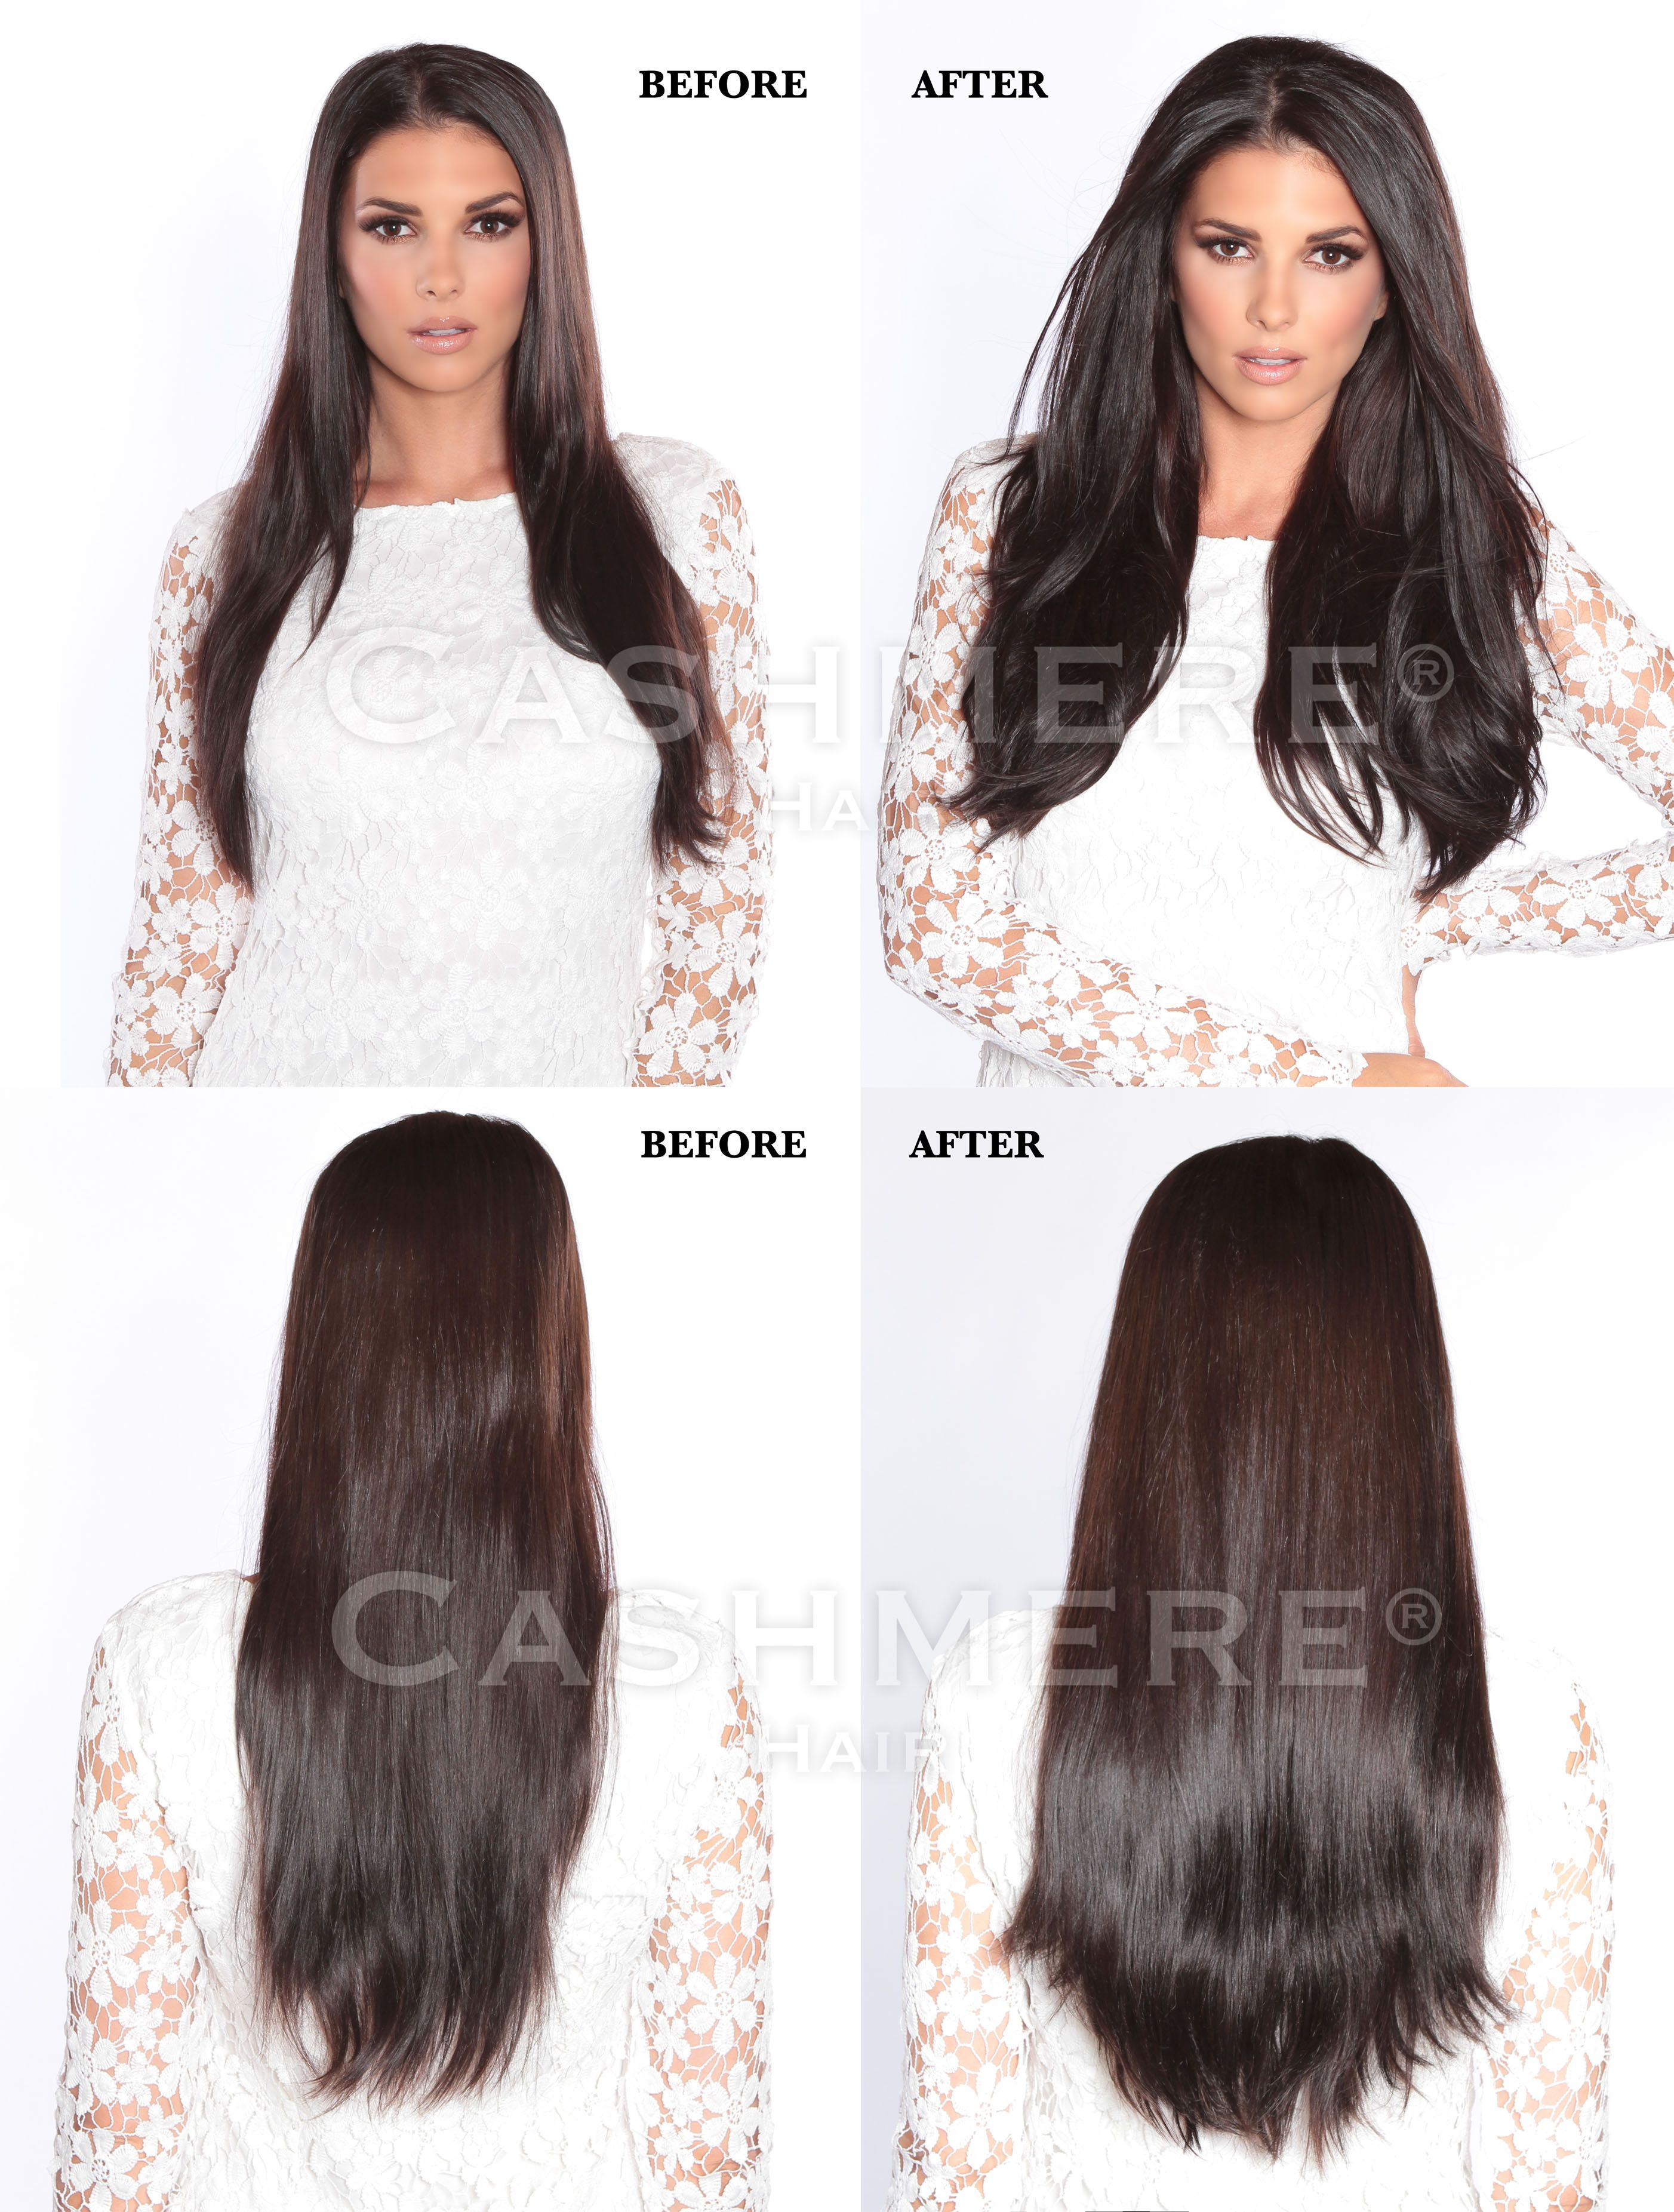 Cashmere Hair Before And After Reviews Amazing Hair Extensions I